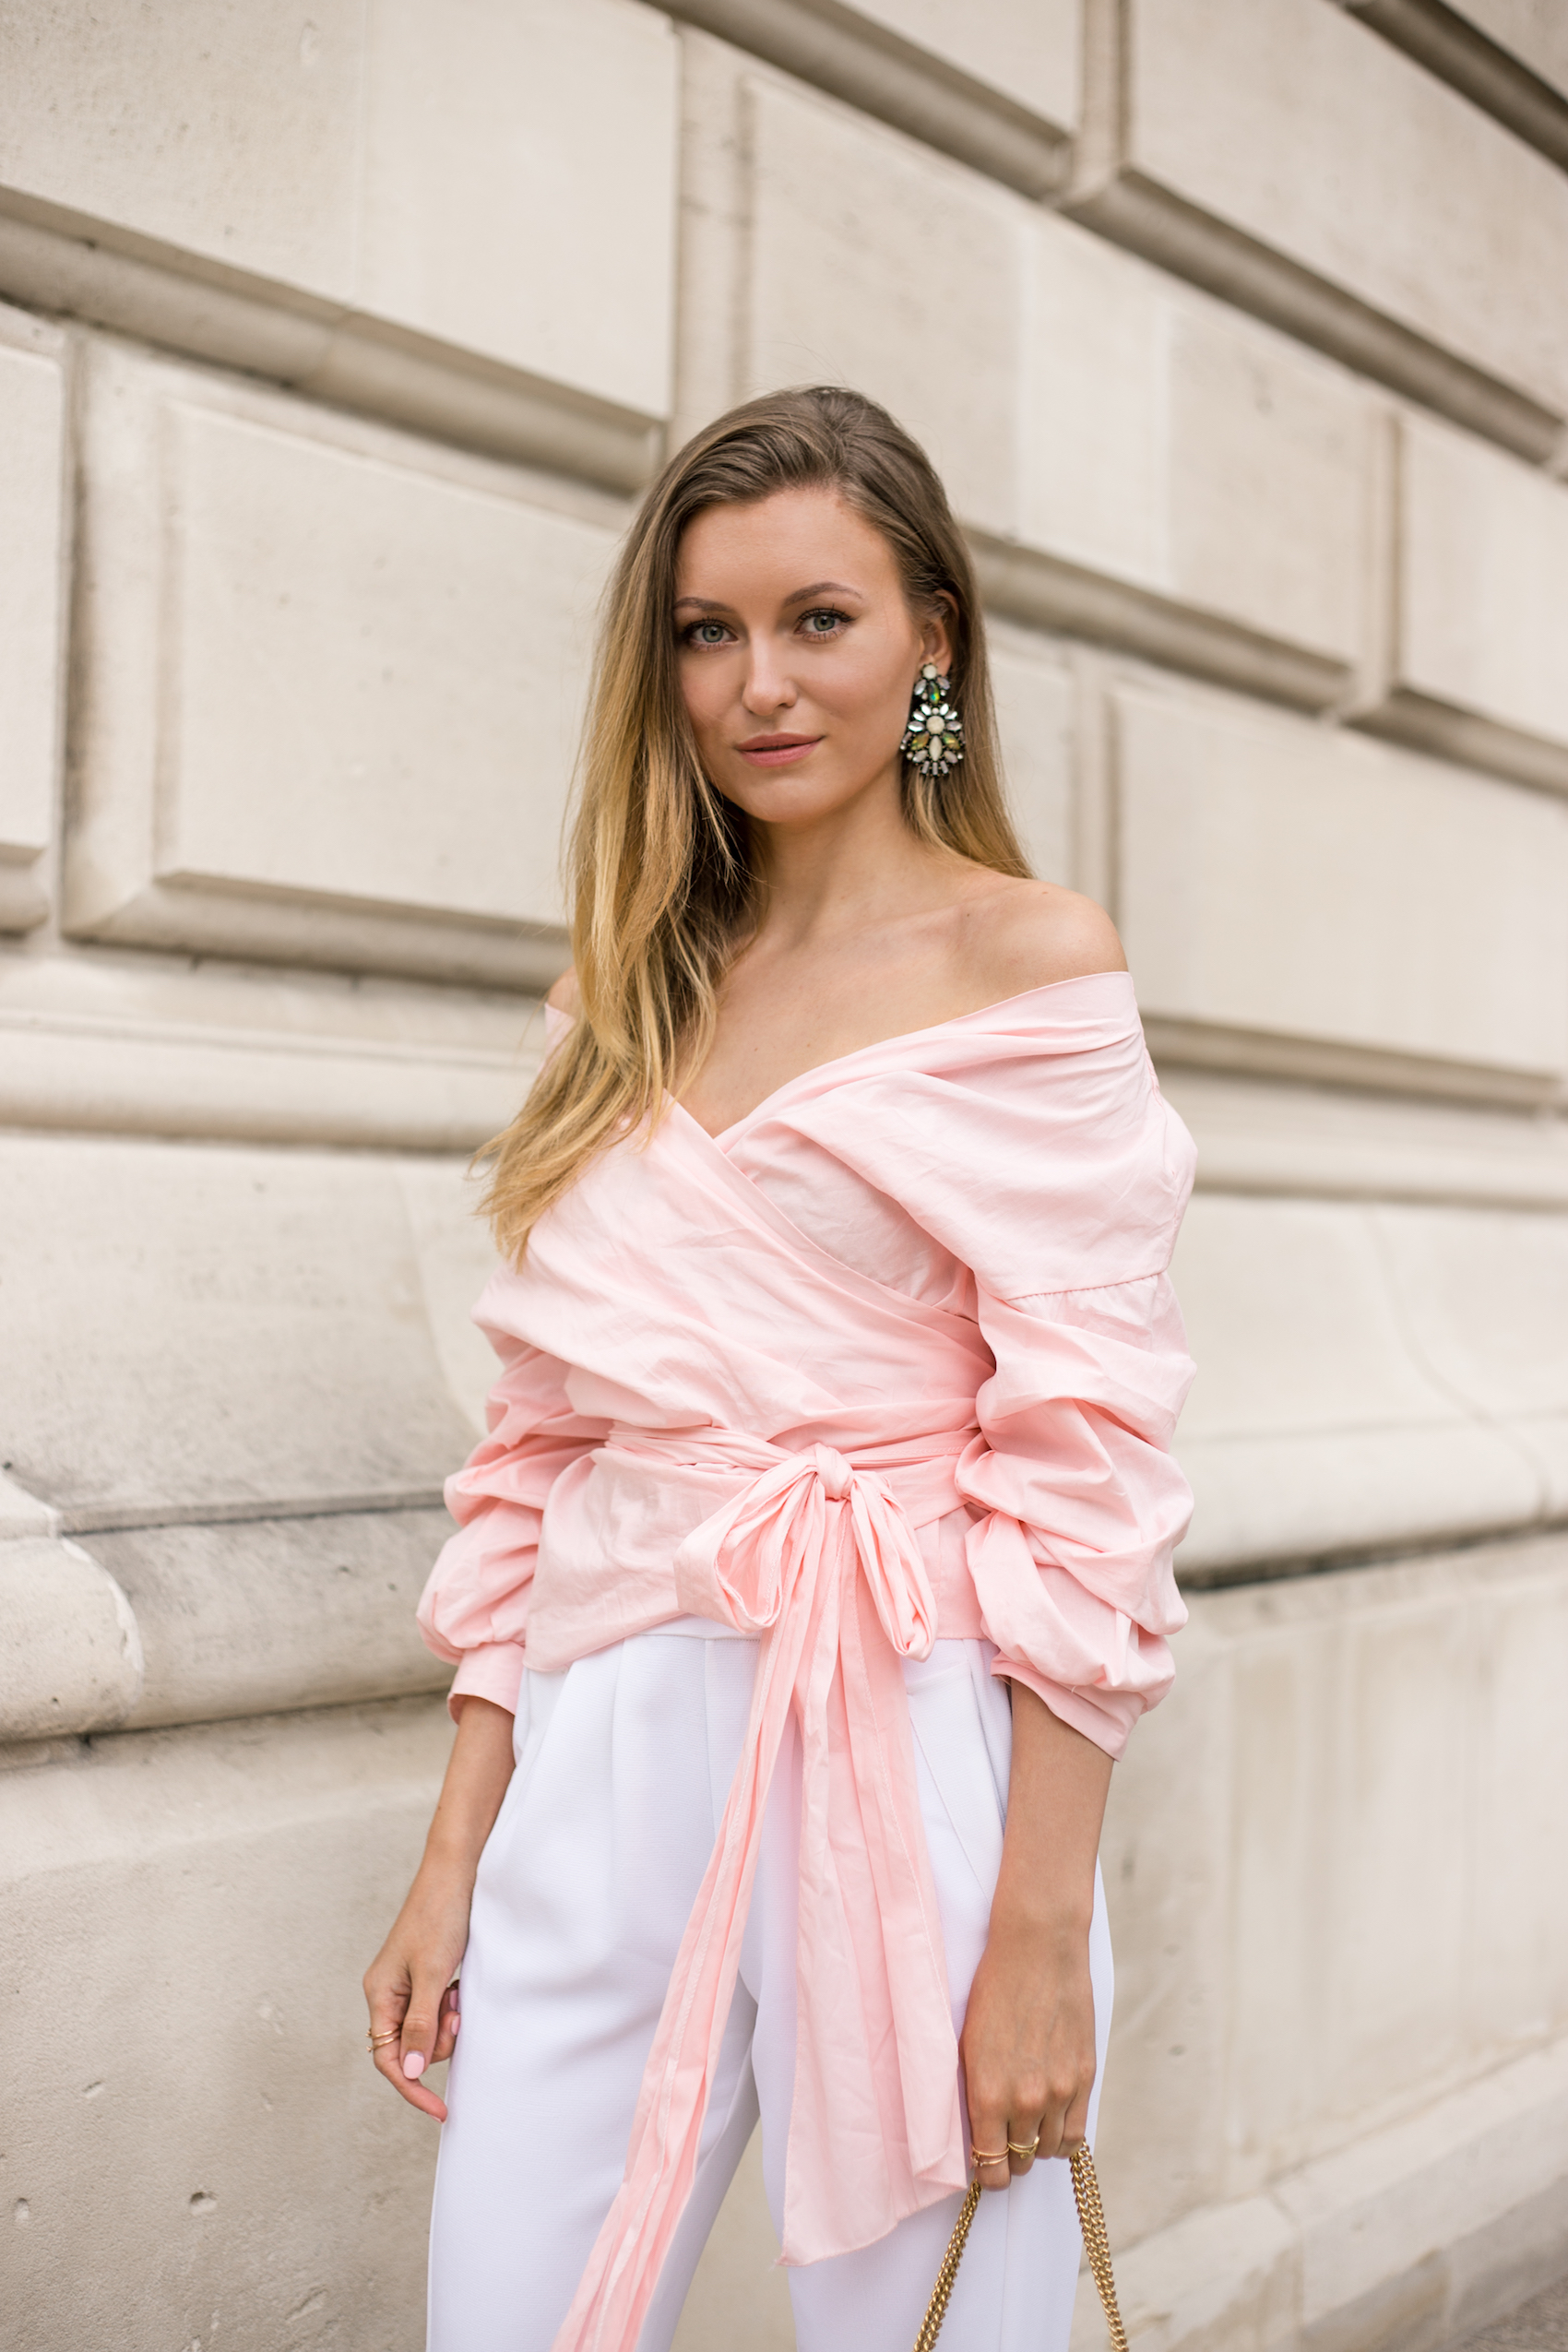 pink-puff-sleeve-bow-tie-outfit-livia-auer-IMG_7186